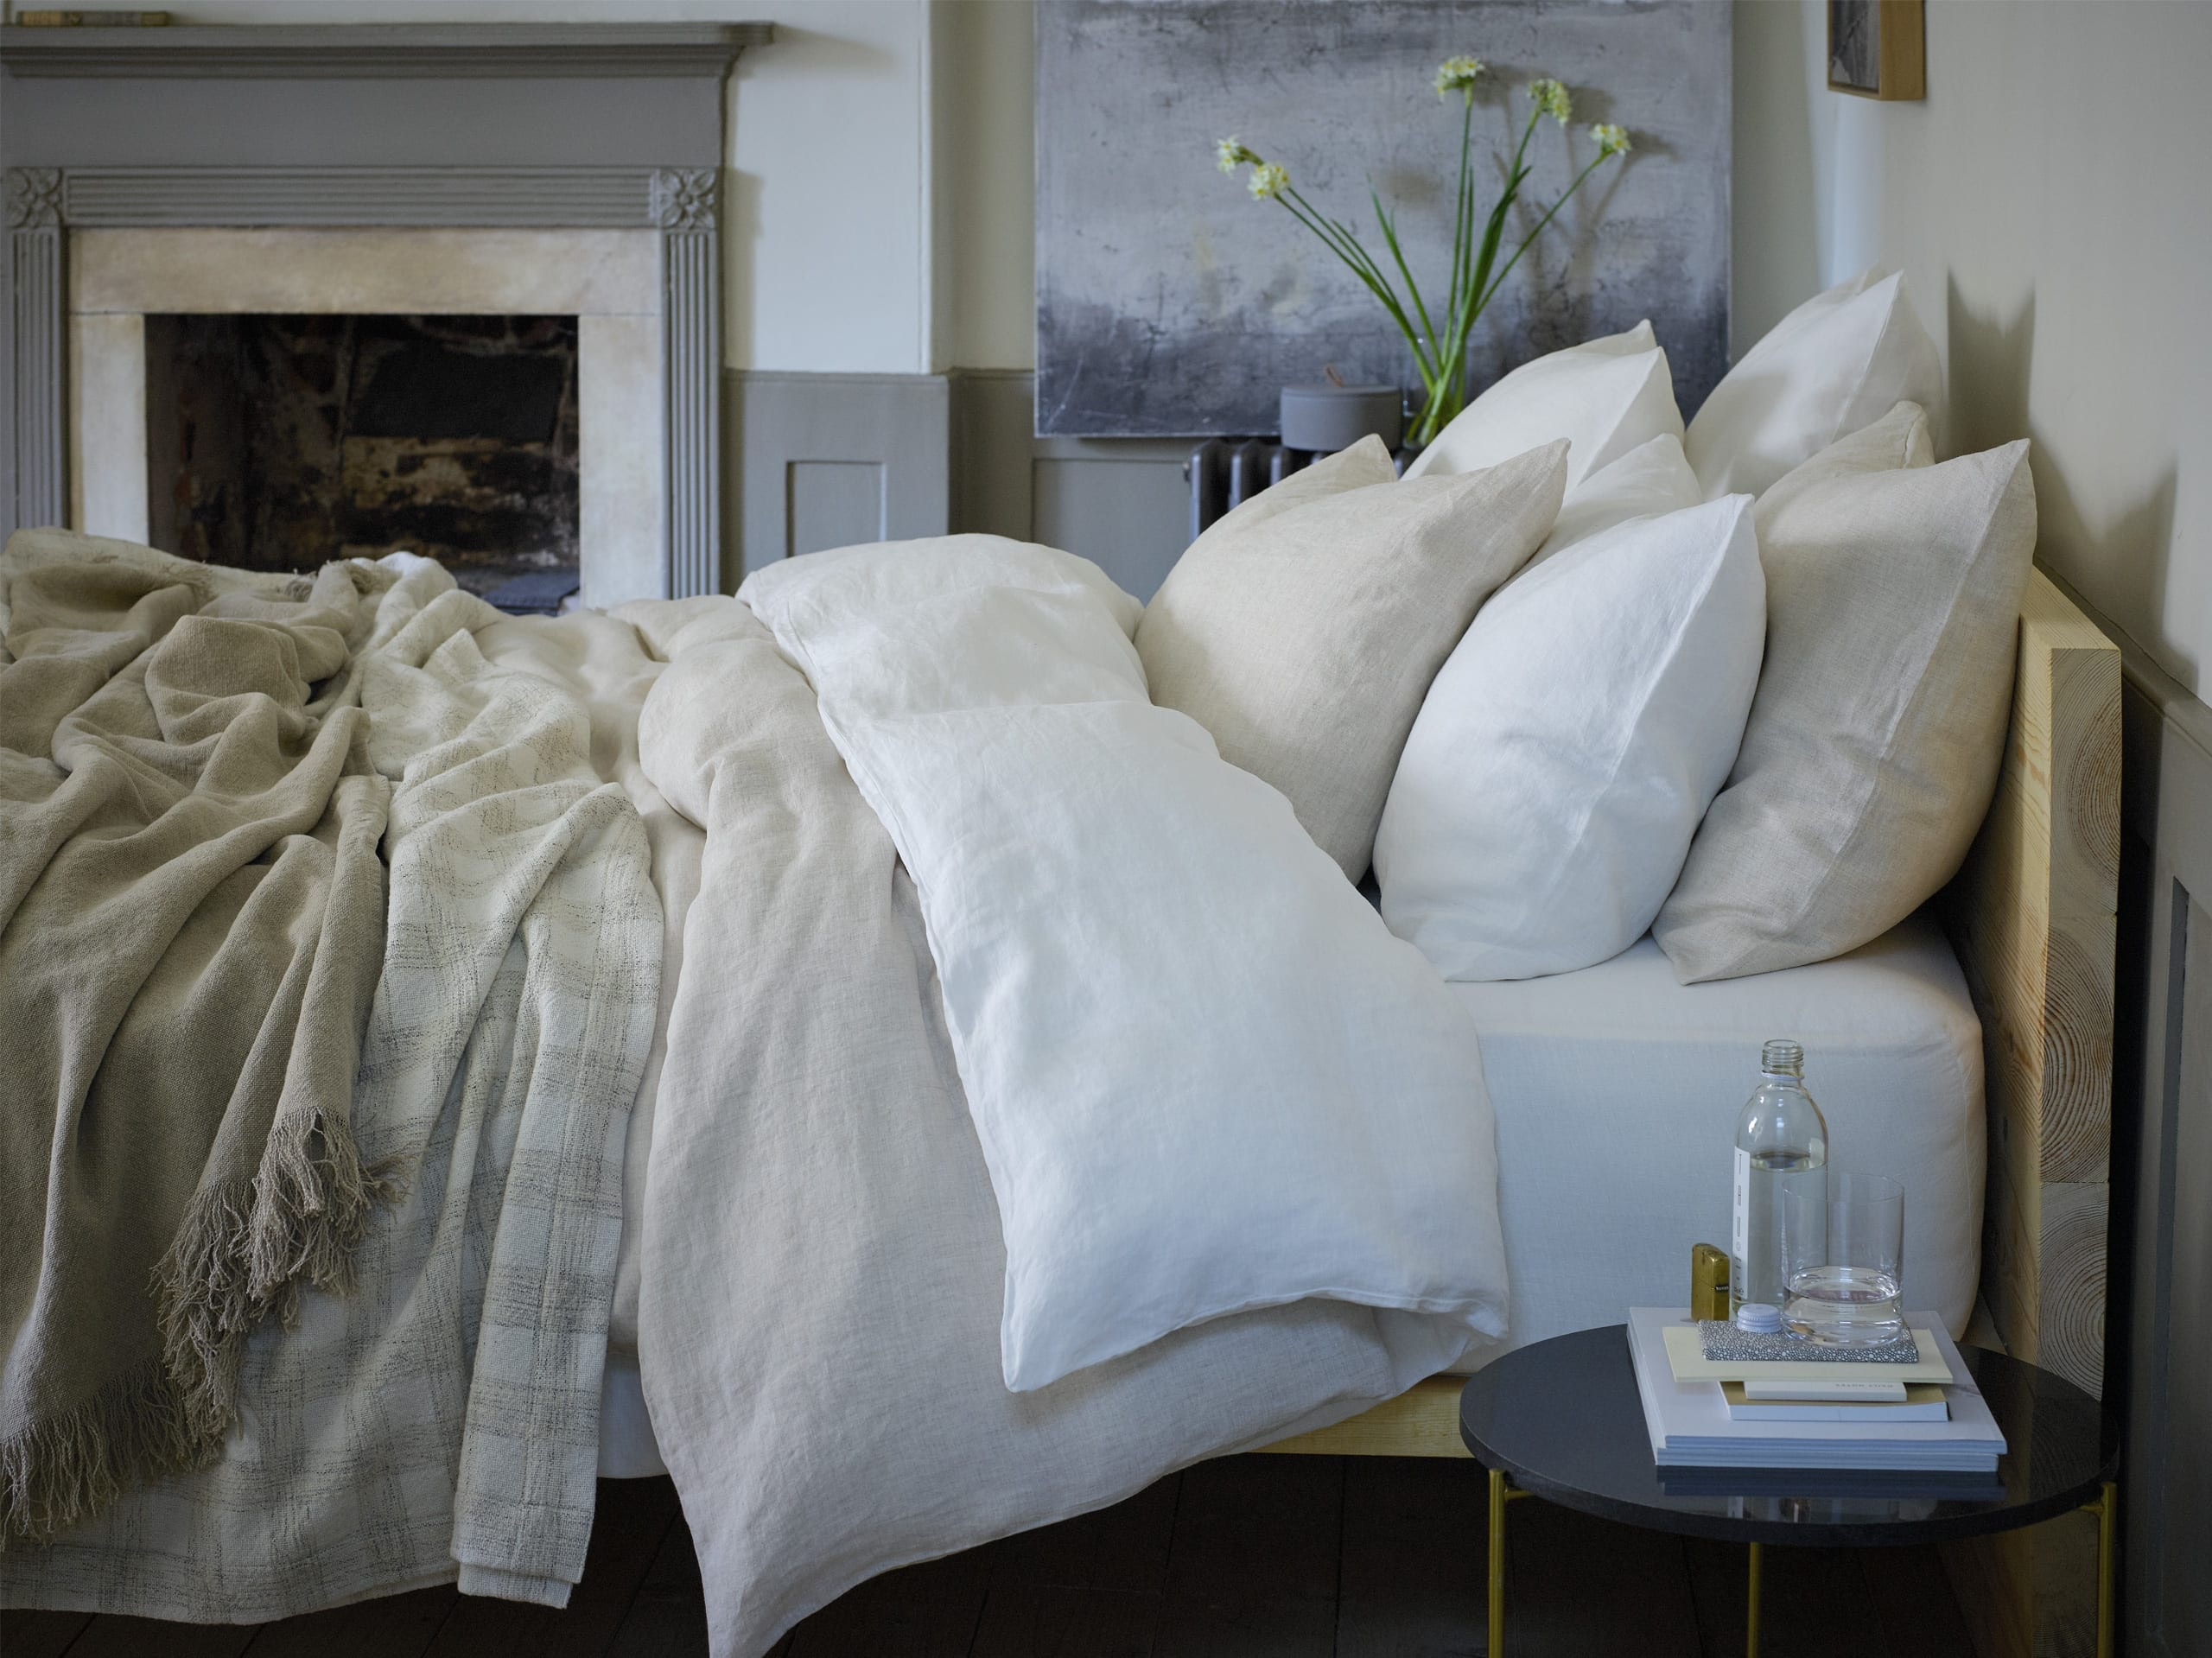 Zara Home Zara Home S Spring 2019 Collection Has Everything You Need To